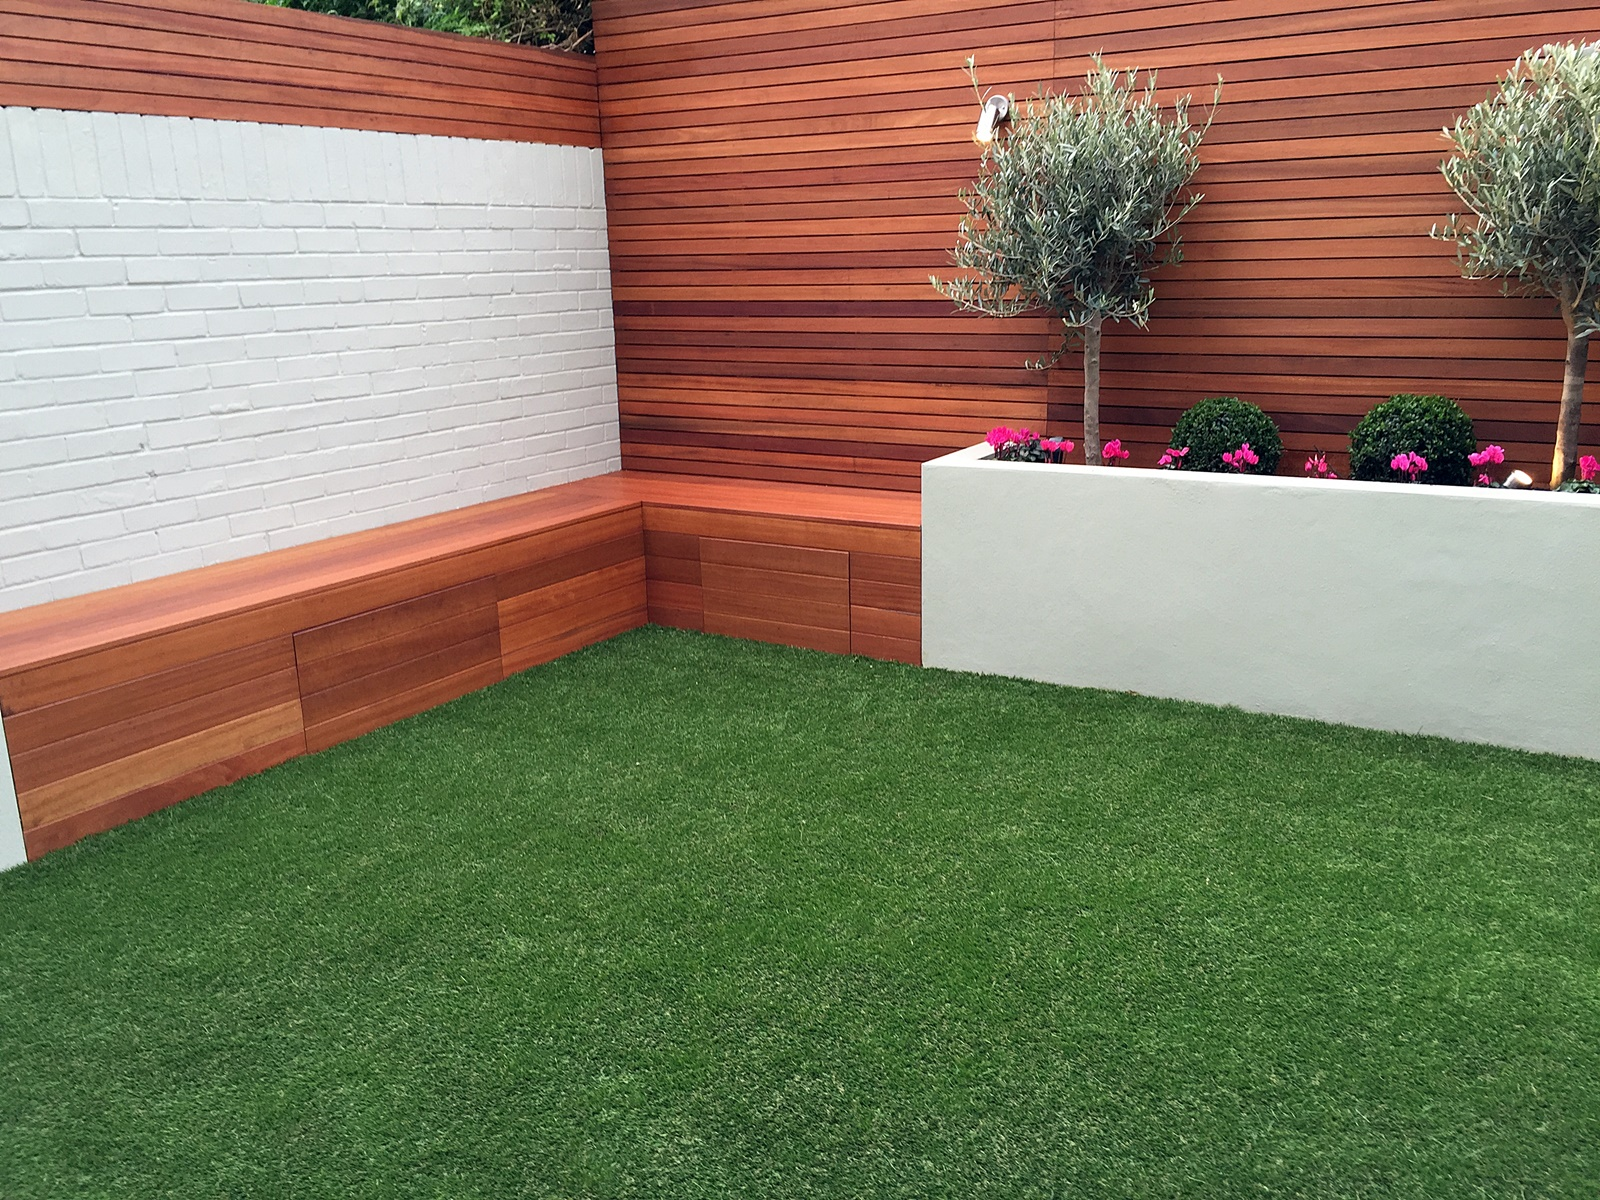 Simple modern court yard garden designer battersea fulham for Small garden design